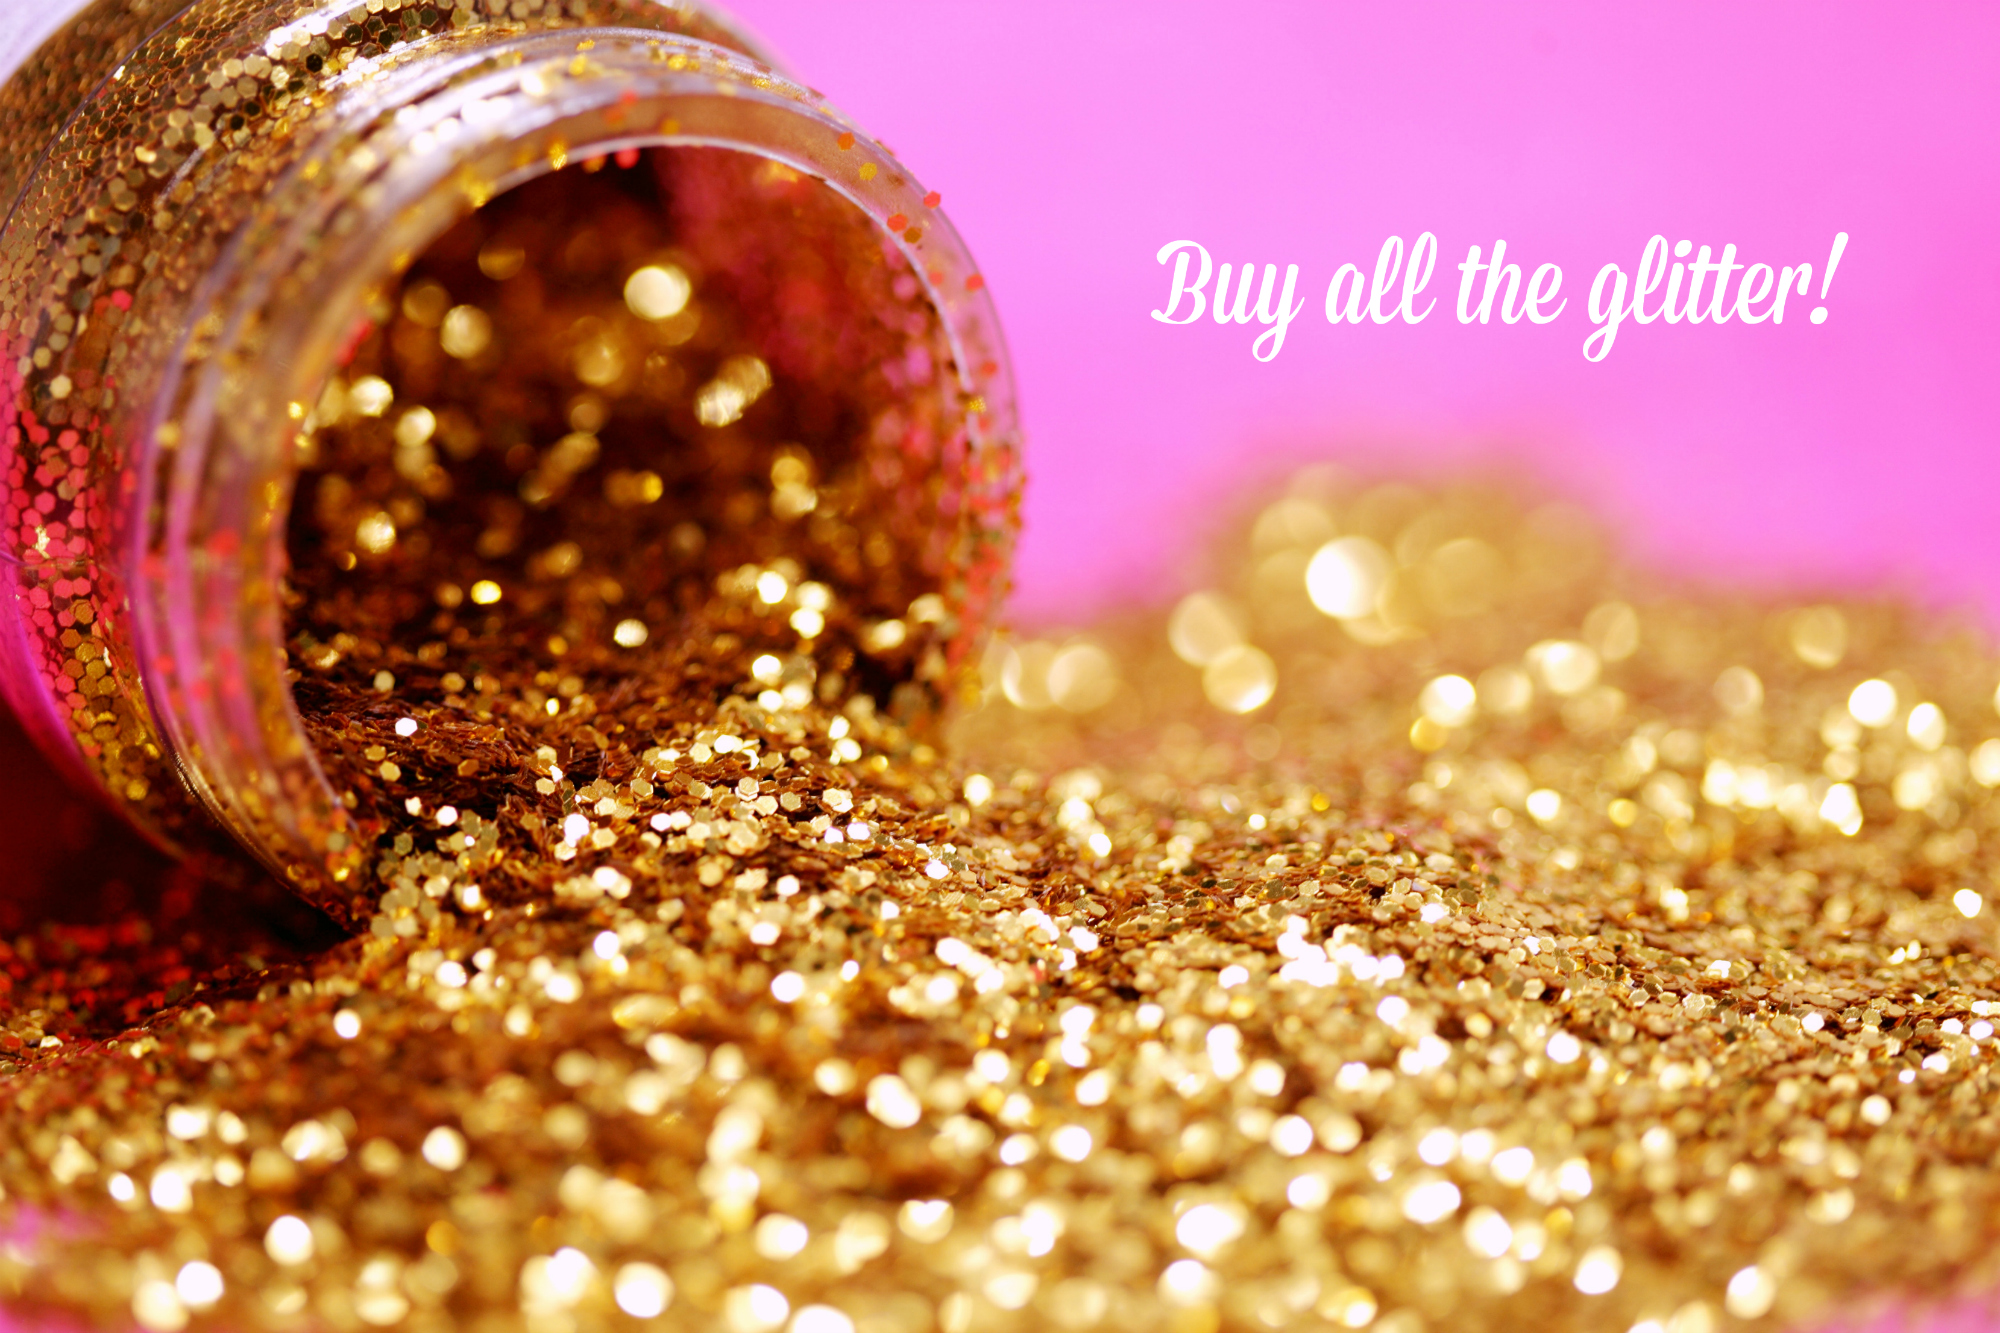 Buy all the glitter